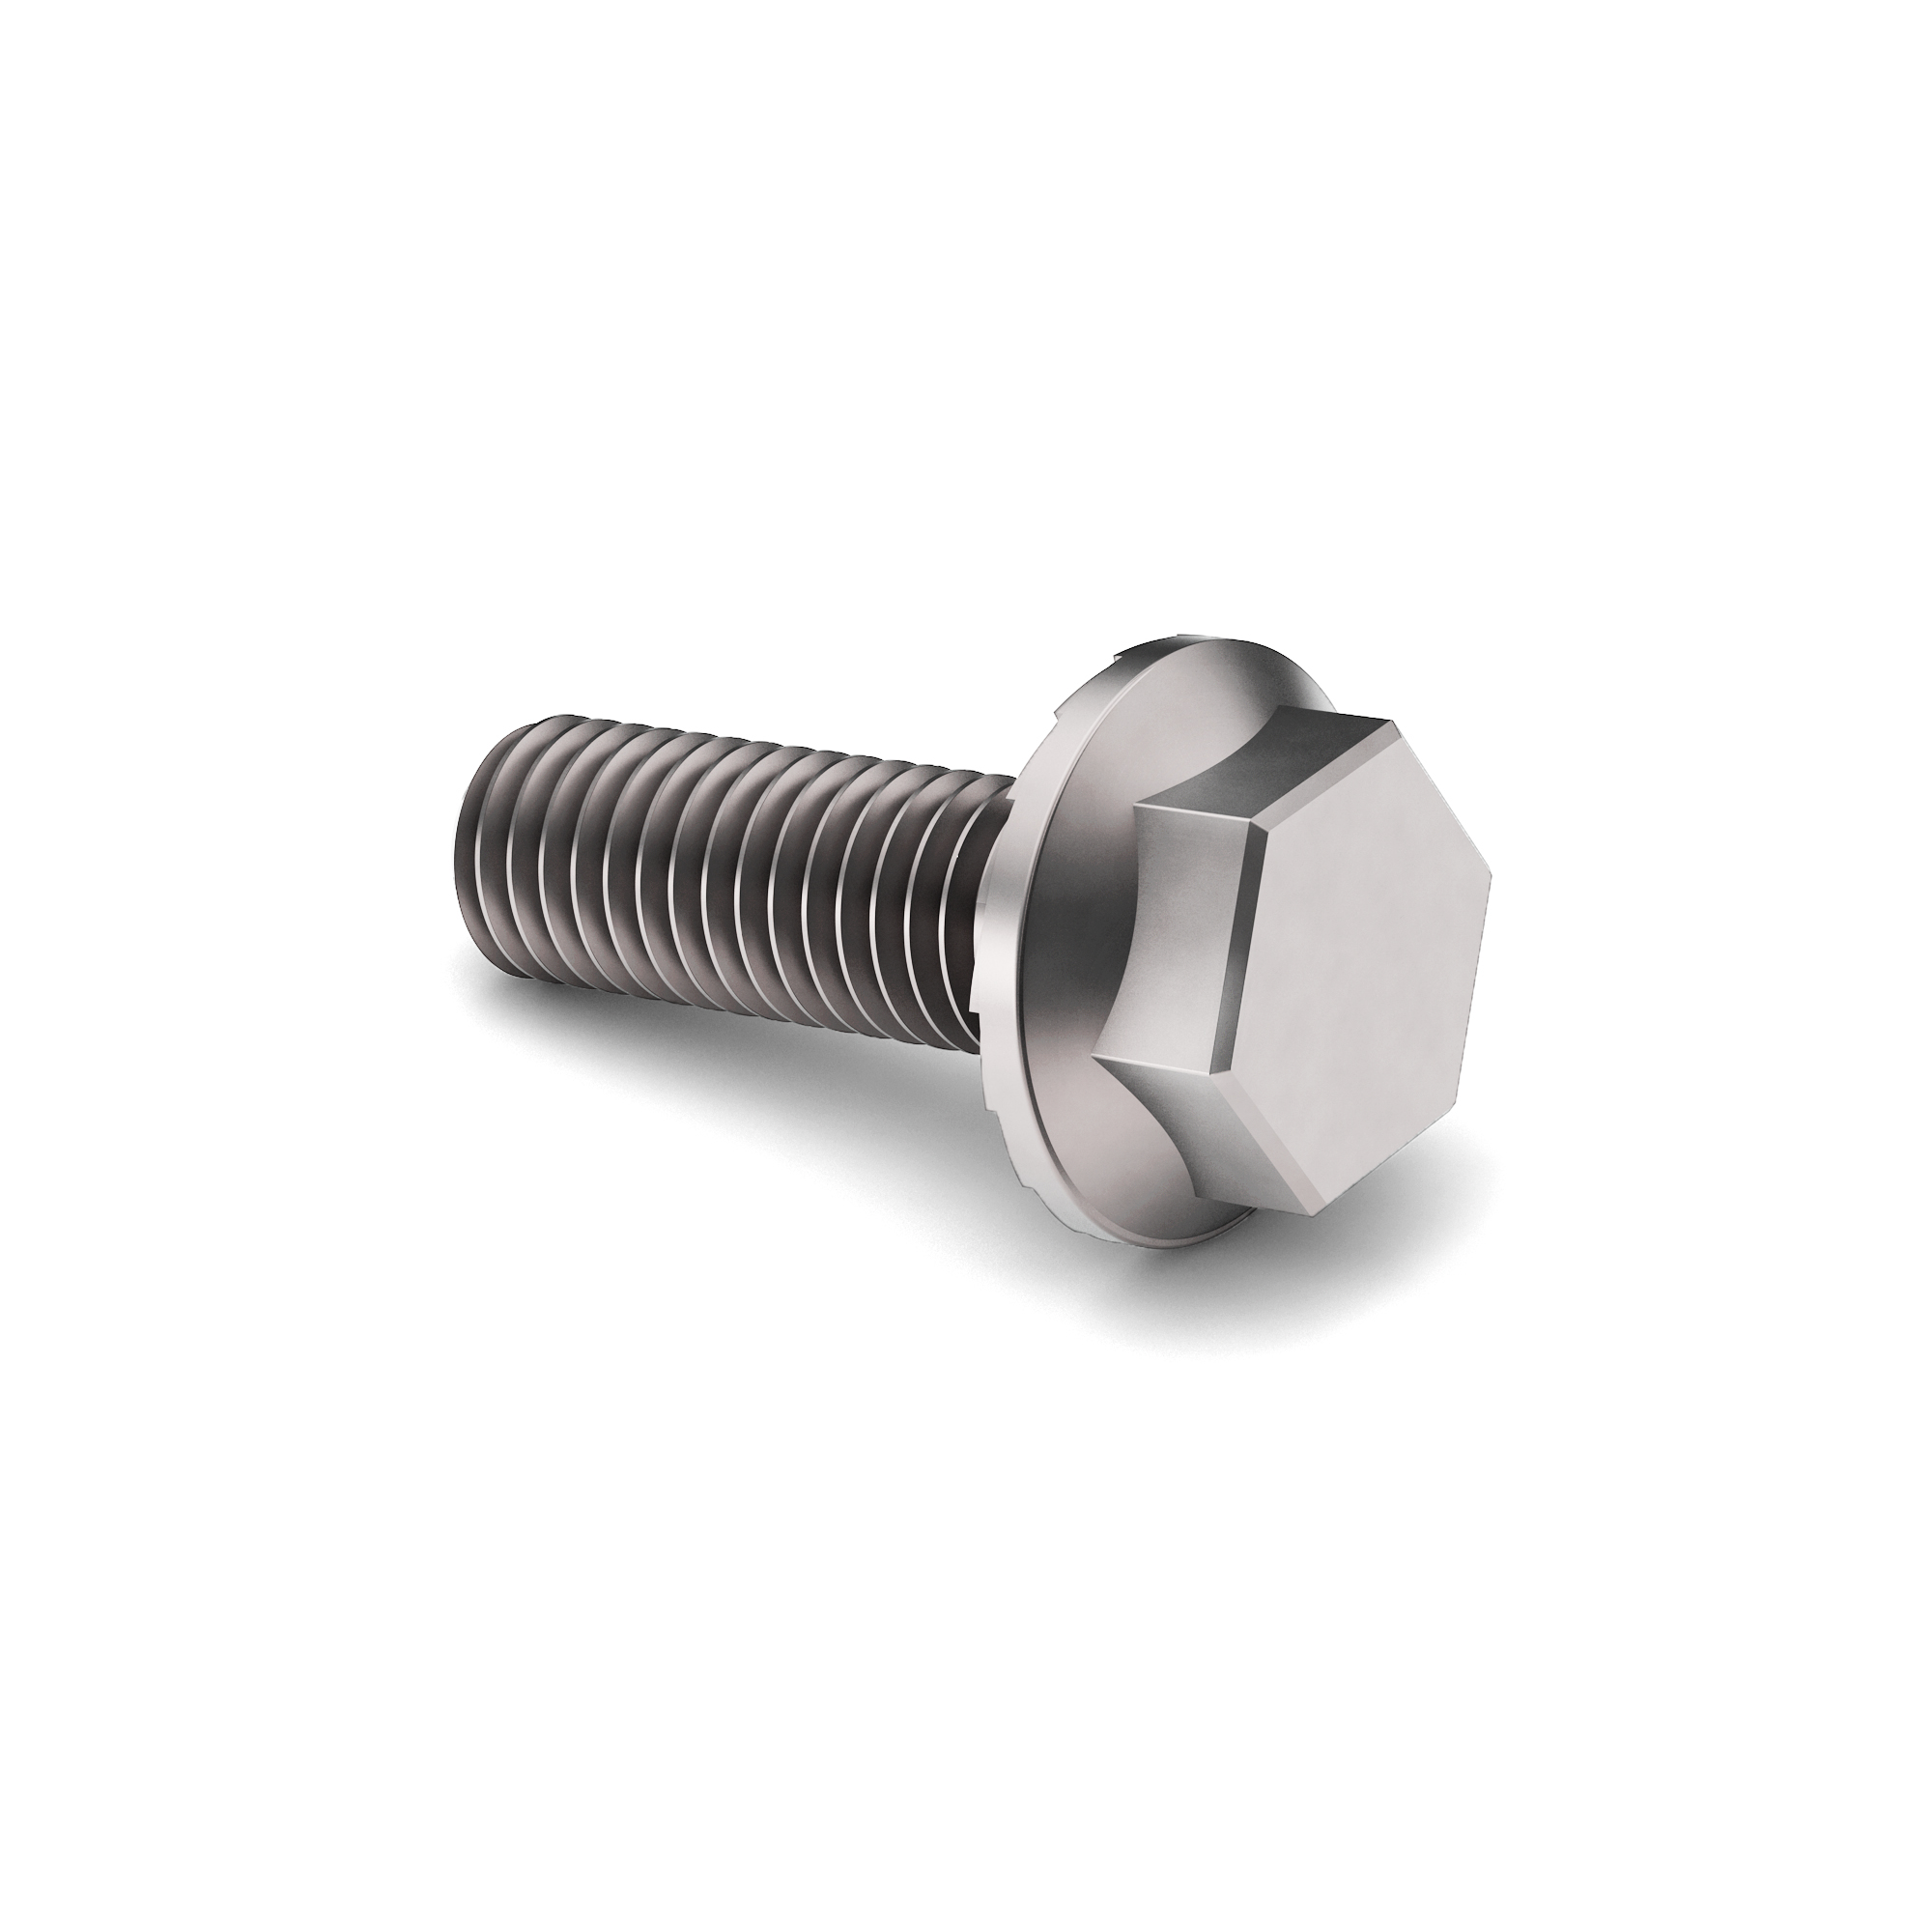 5/16-18x1 3/4 18/8 (A2) SS Hex Serrated Flange Locking Machine Screw Full Thrd Plain Finish